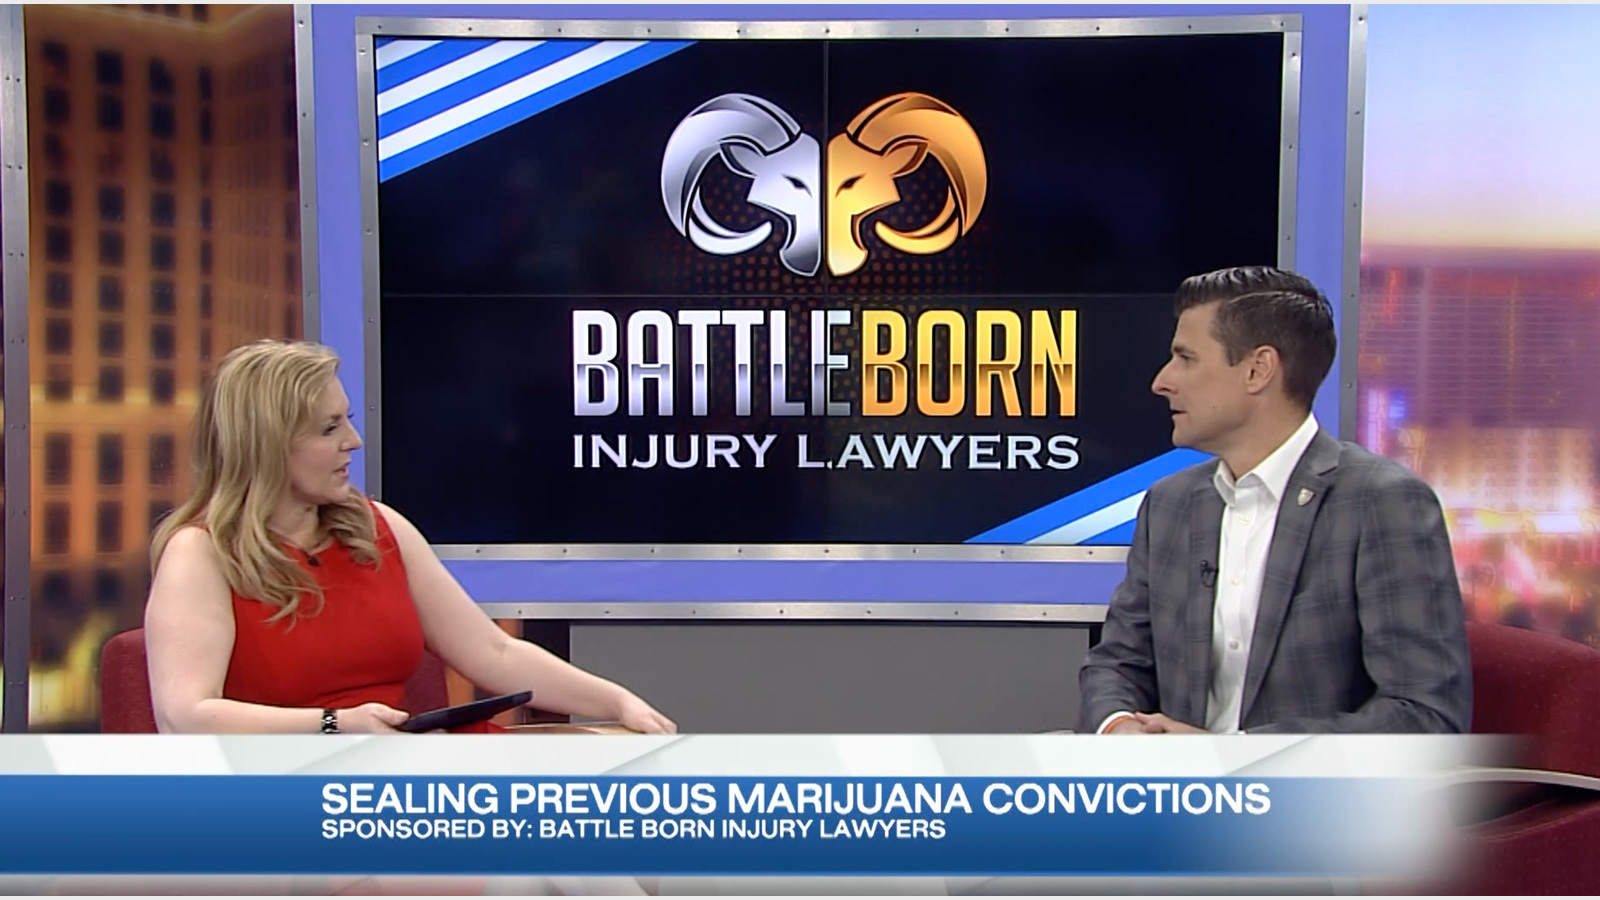 Battle Born Lawyers on sealing previous marijuana convictions